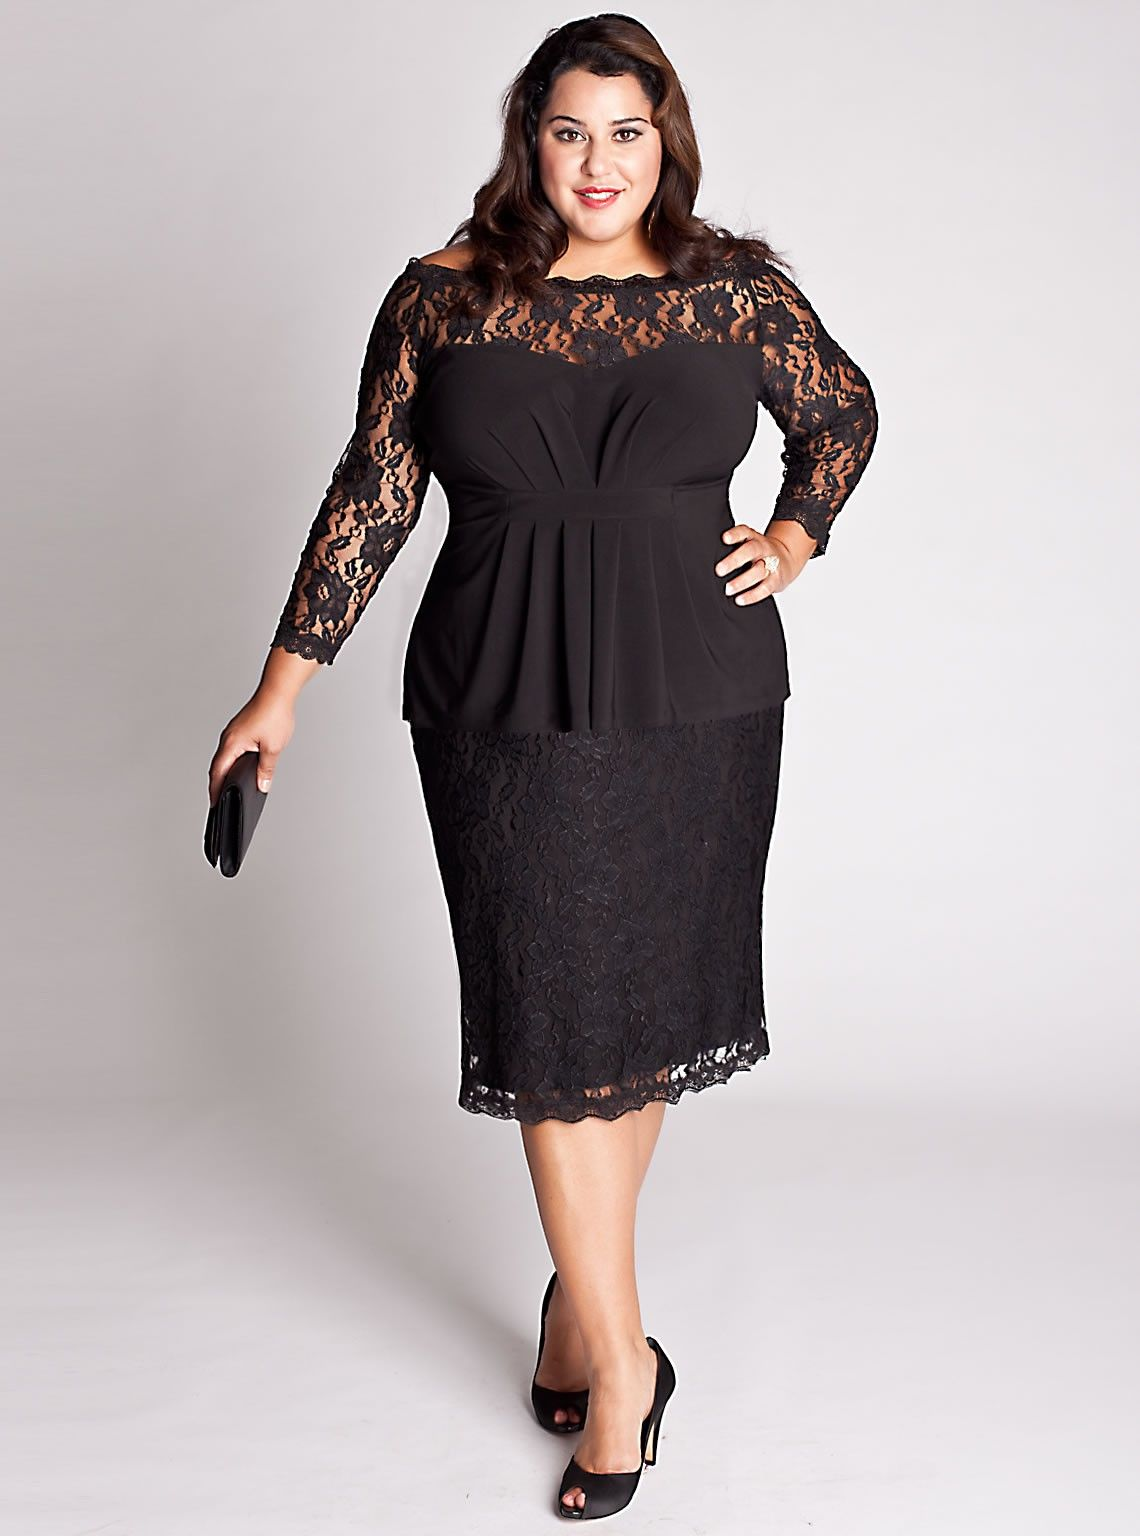 juniors plus size clothing cheap online stores 2014-2015 04 ...